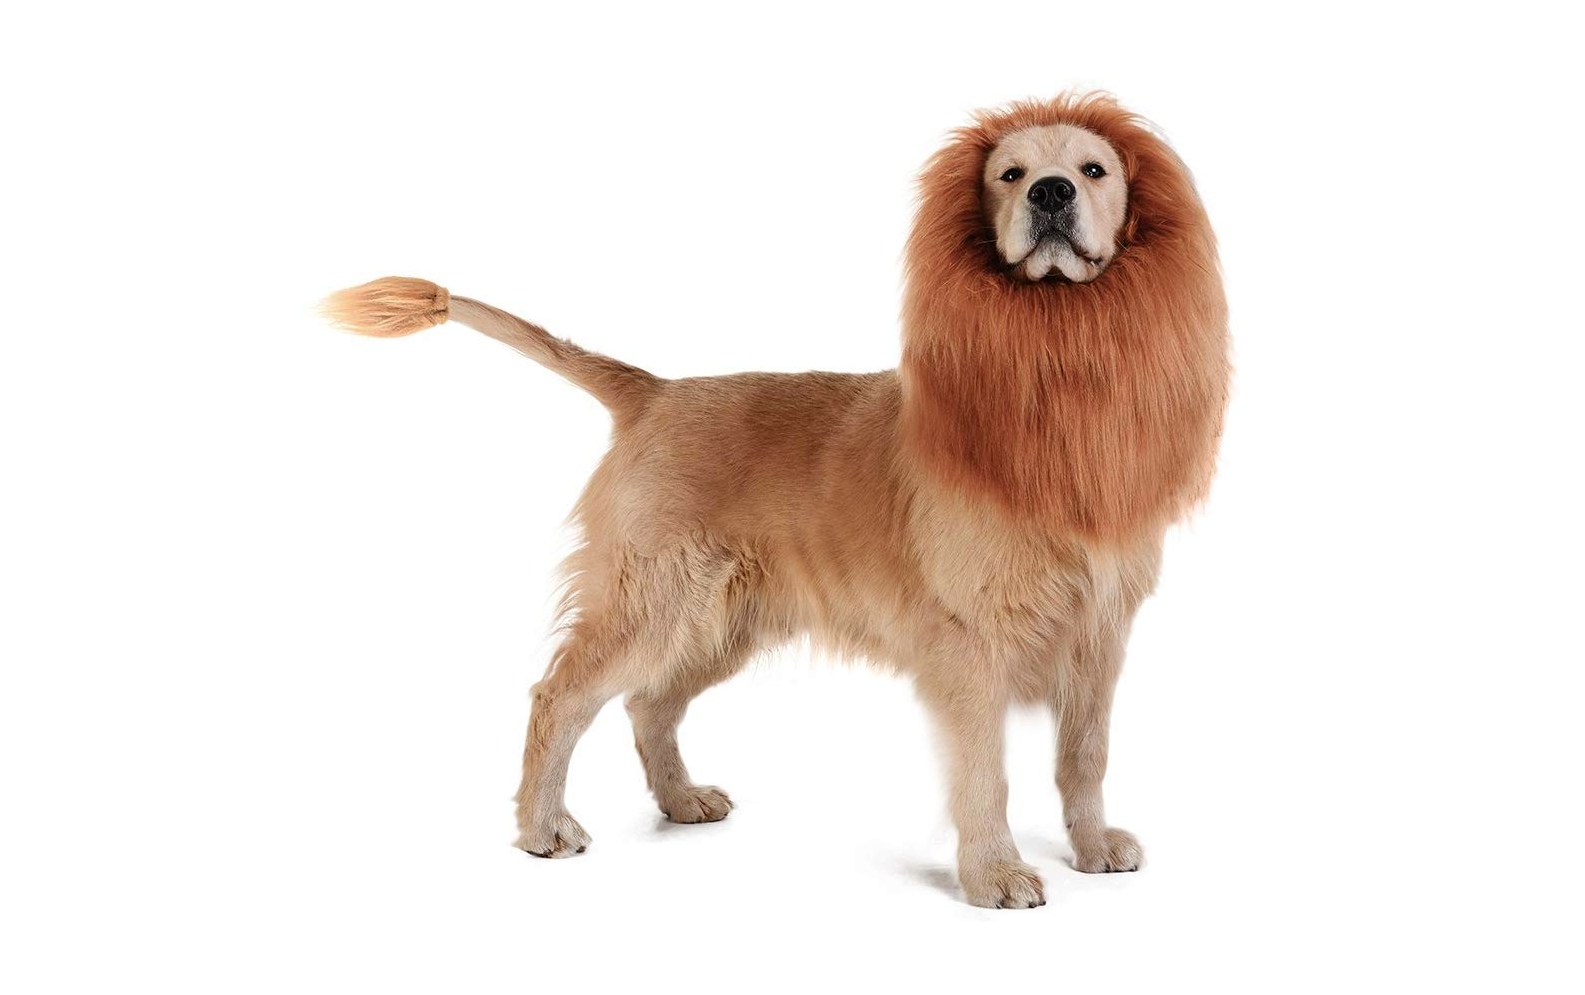 Amazon Customers Are Raving About This $14 Lion Mane that Turns Dogs into Simba